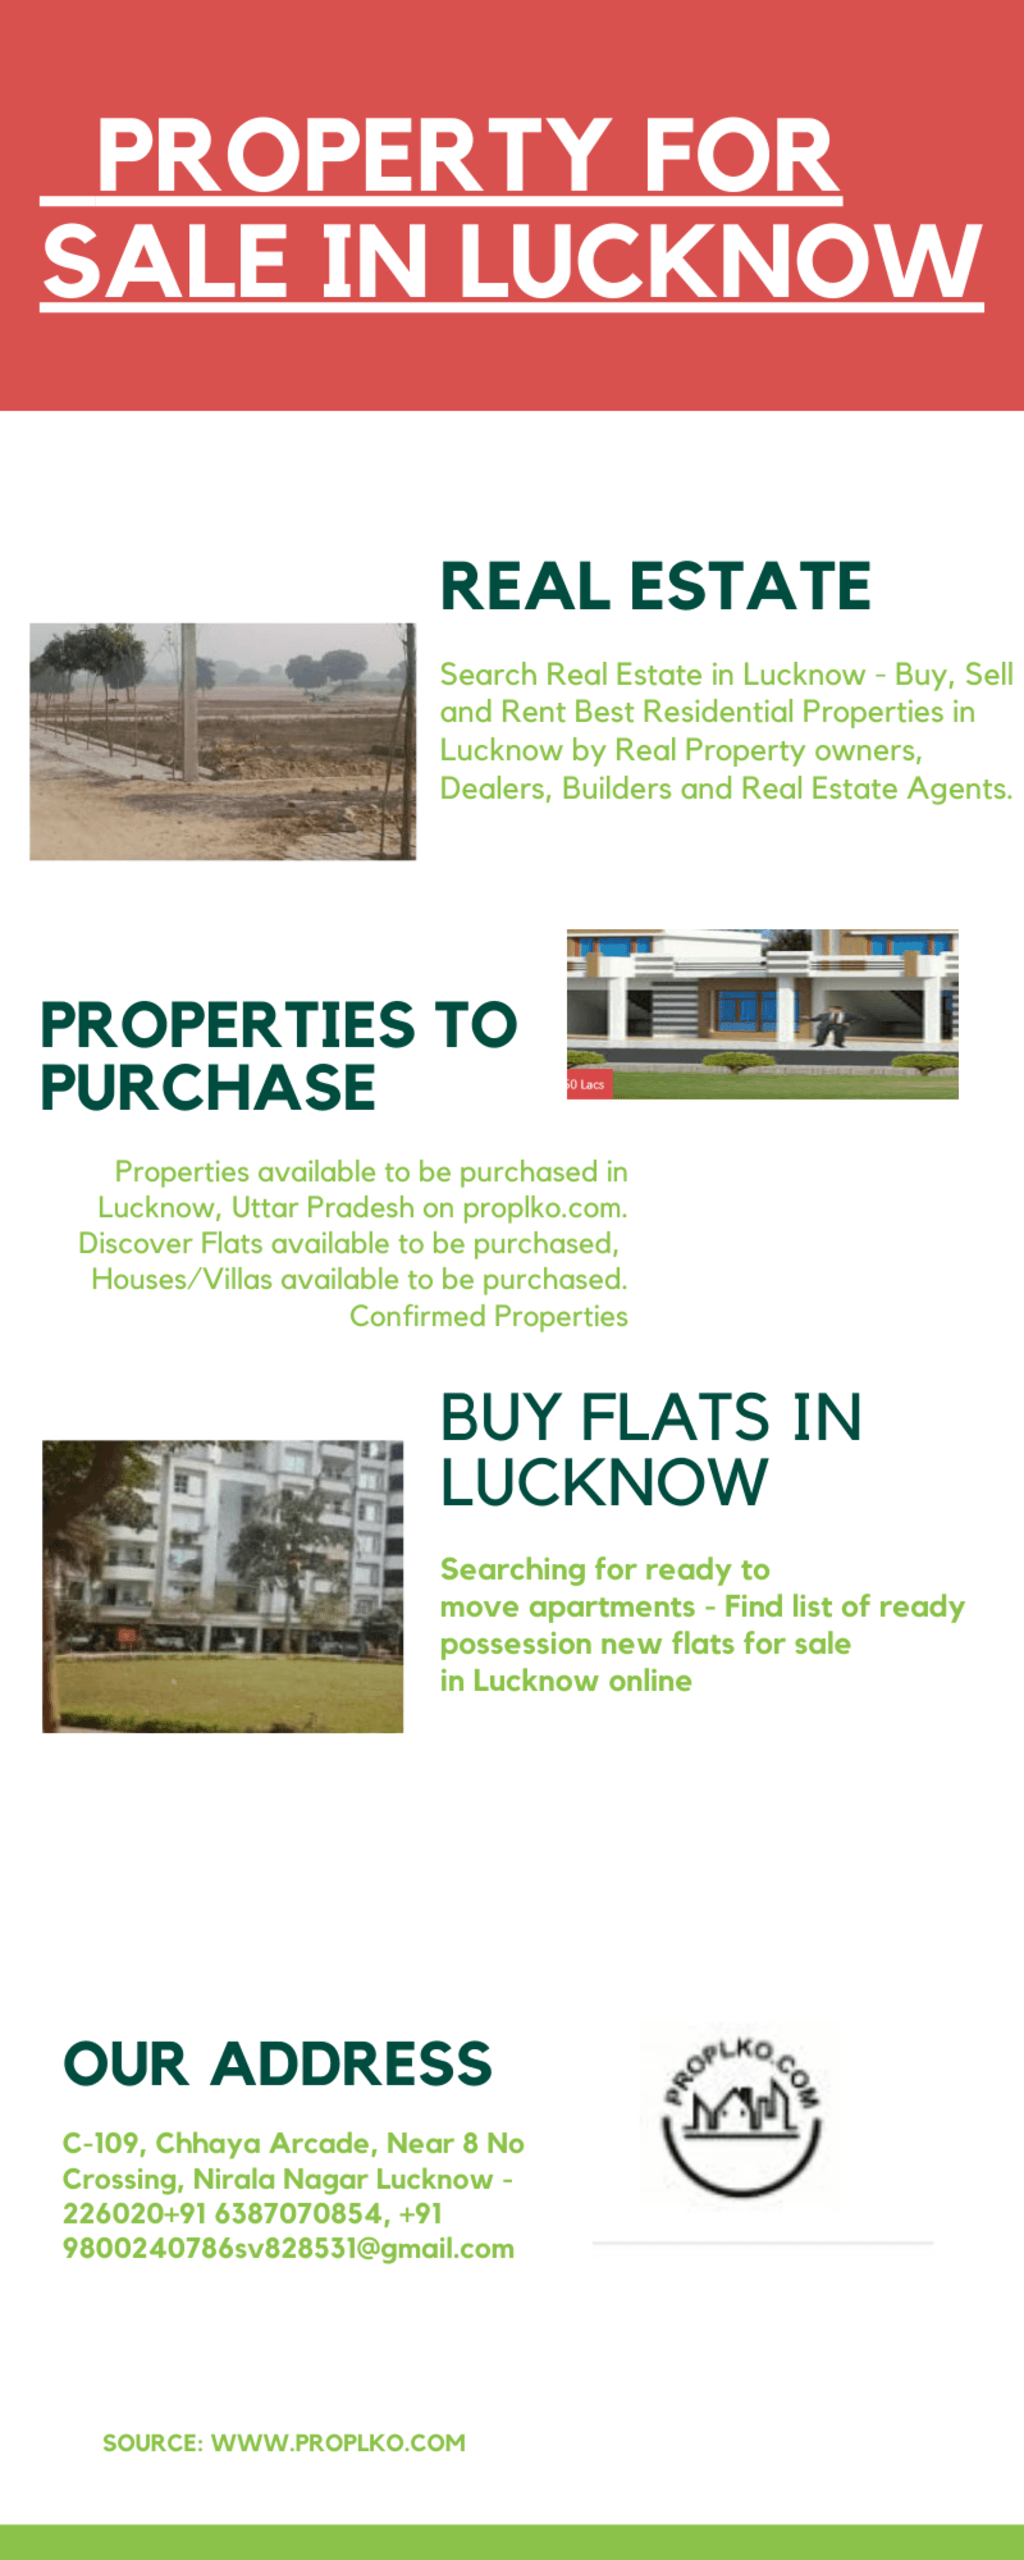 PROPERTY FOR SALE IN LUCKNOW via pro lko